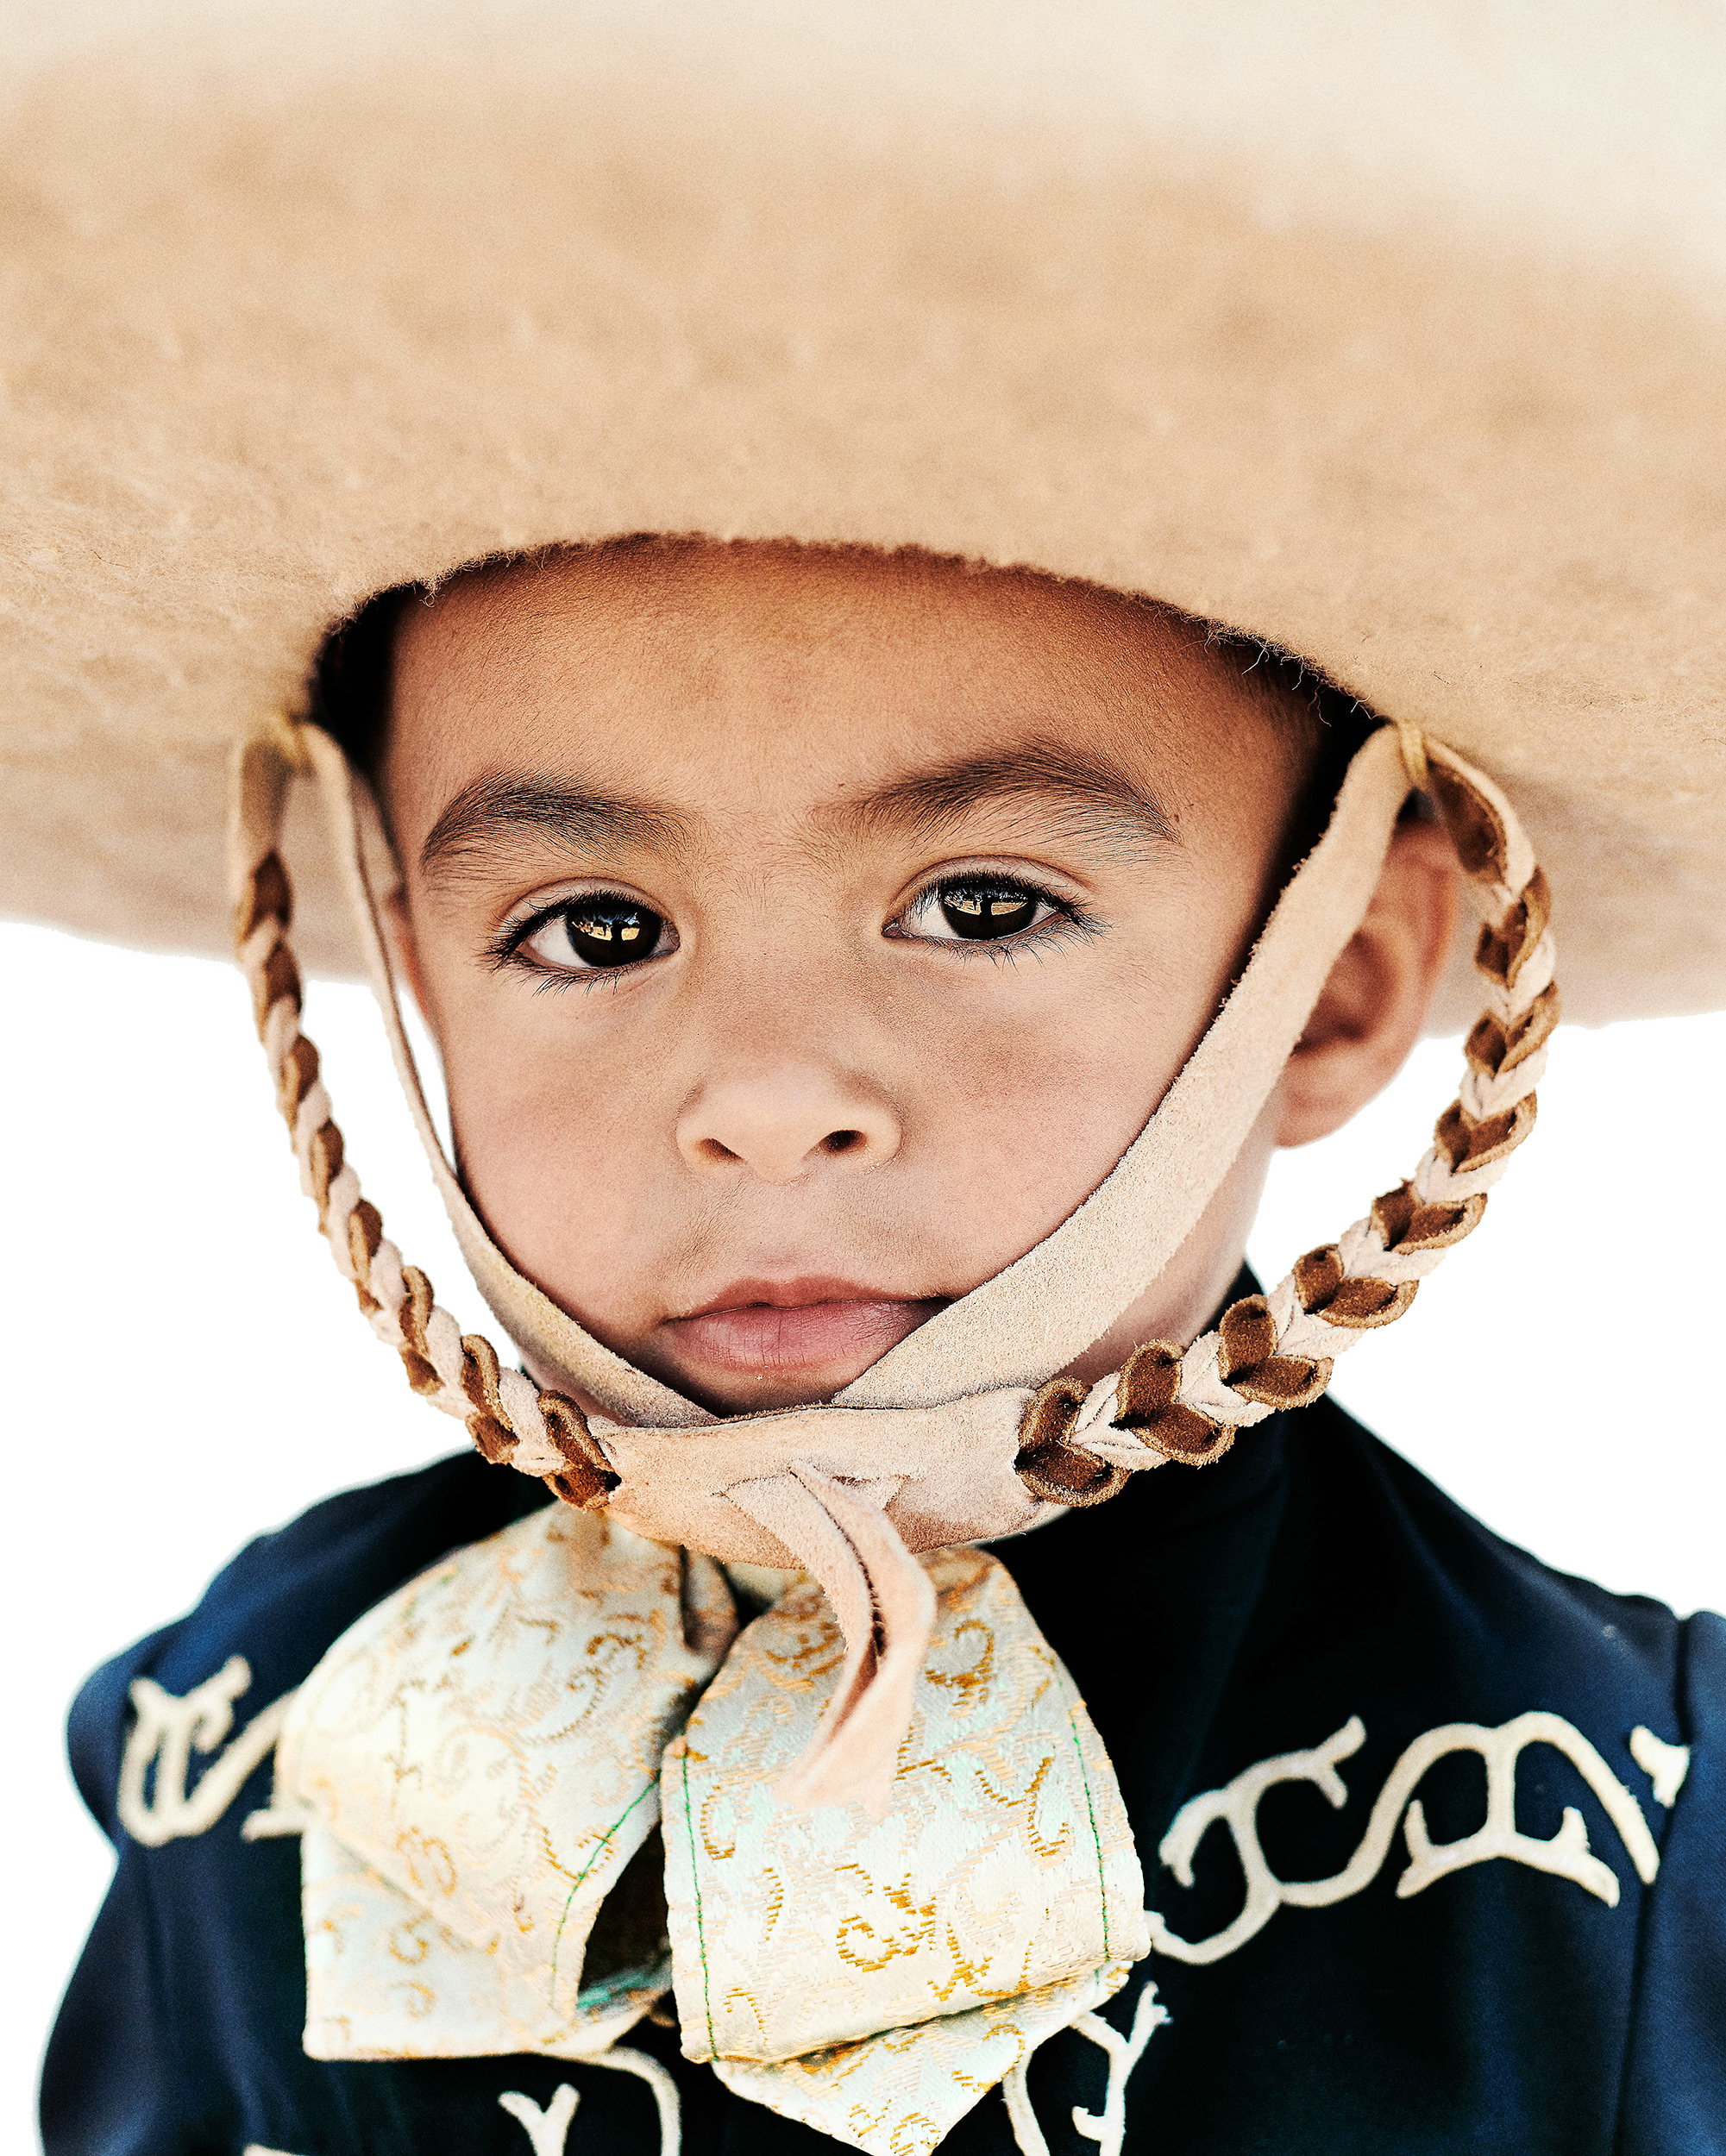 LittleCharro